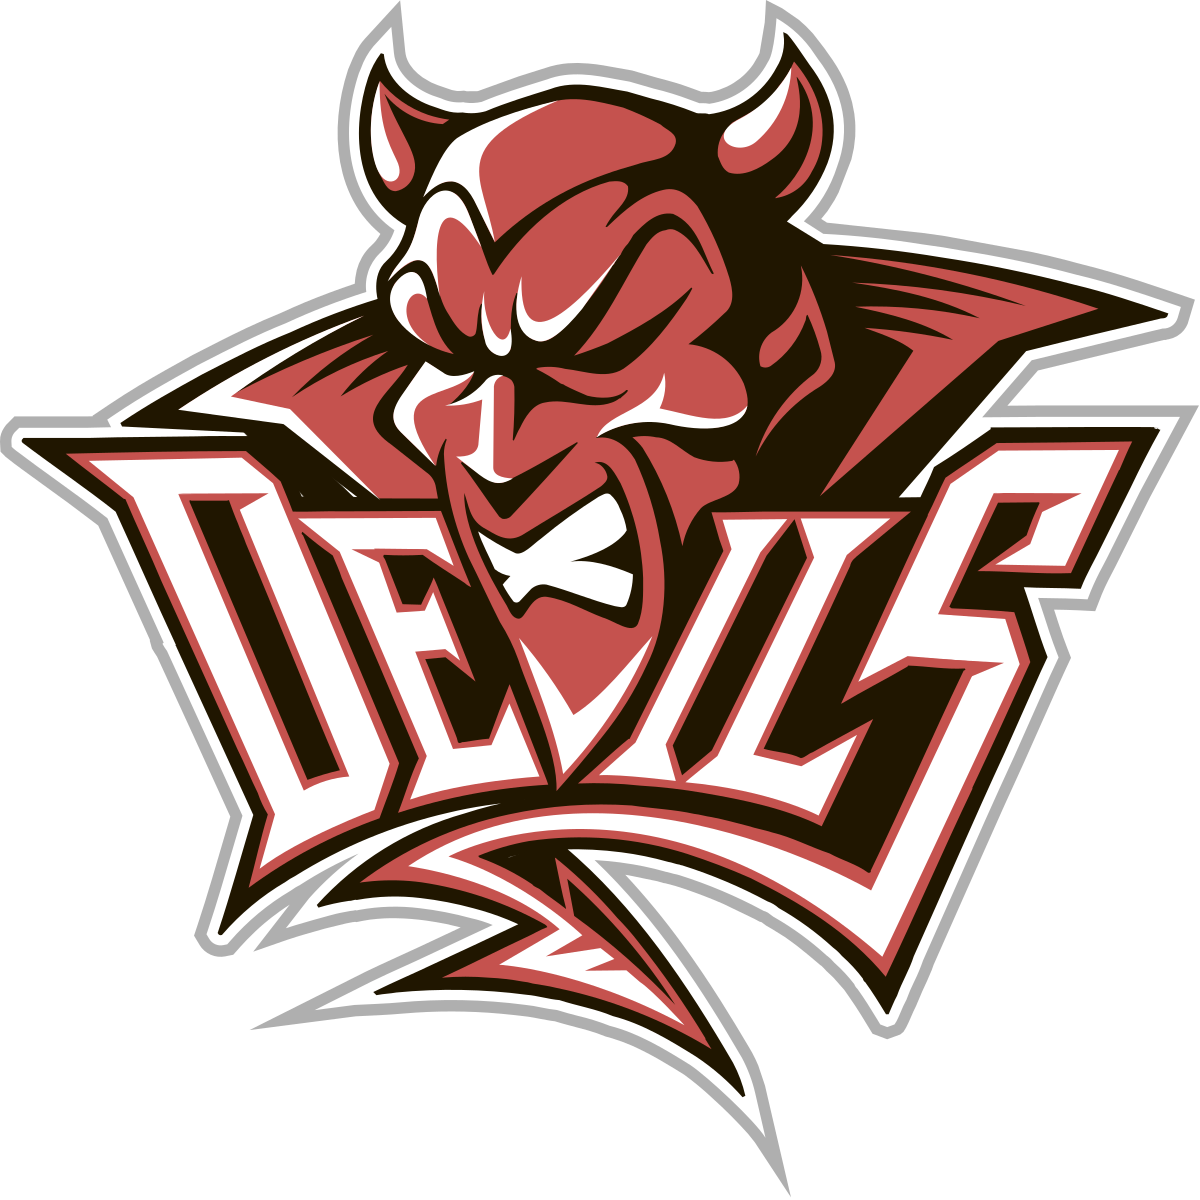 Vikings svg dundee. Cardiff devils wikipedia